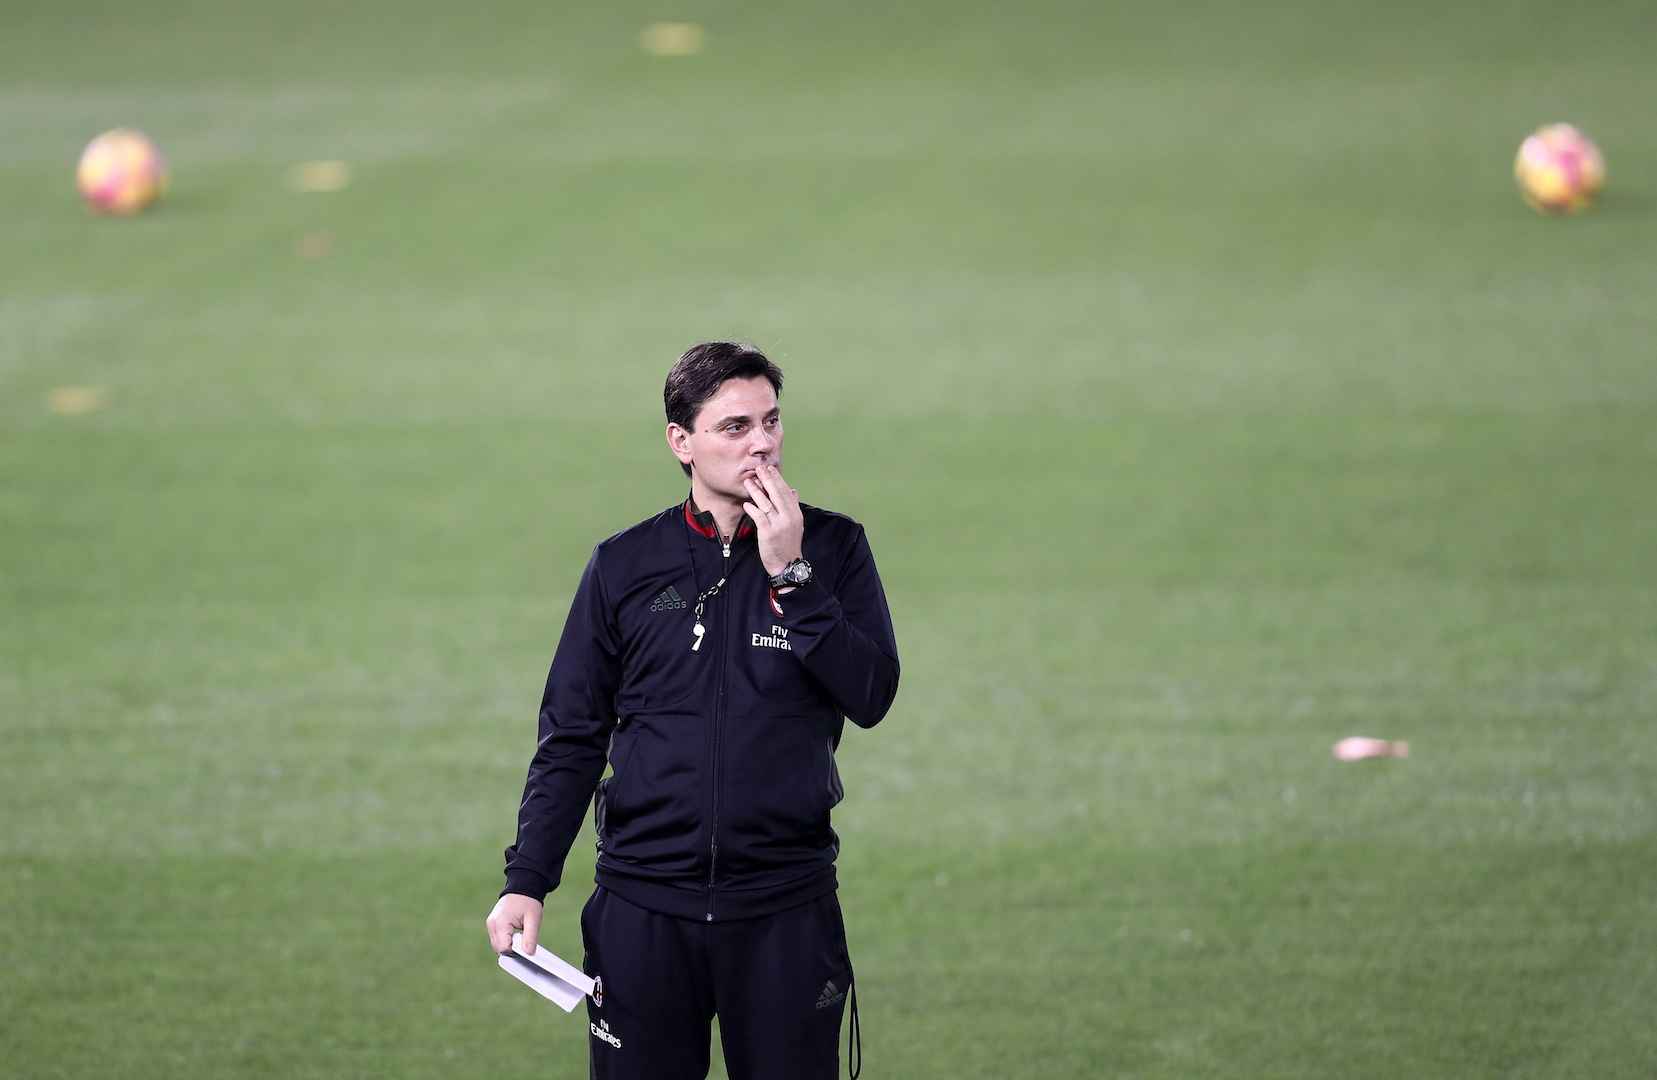 AC Milan's Italian head coach Vincenzo Montella monitors a training session in the Qatari capital Doha on December 22, 2016, on the eve of the Final of the Italian Super Cup between AC Milan and Juventus. / AFP / KARIM JAAFAR (Photo credit should read KARIM JAAFAR/AFP/Getty Images)